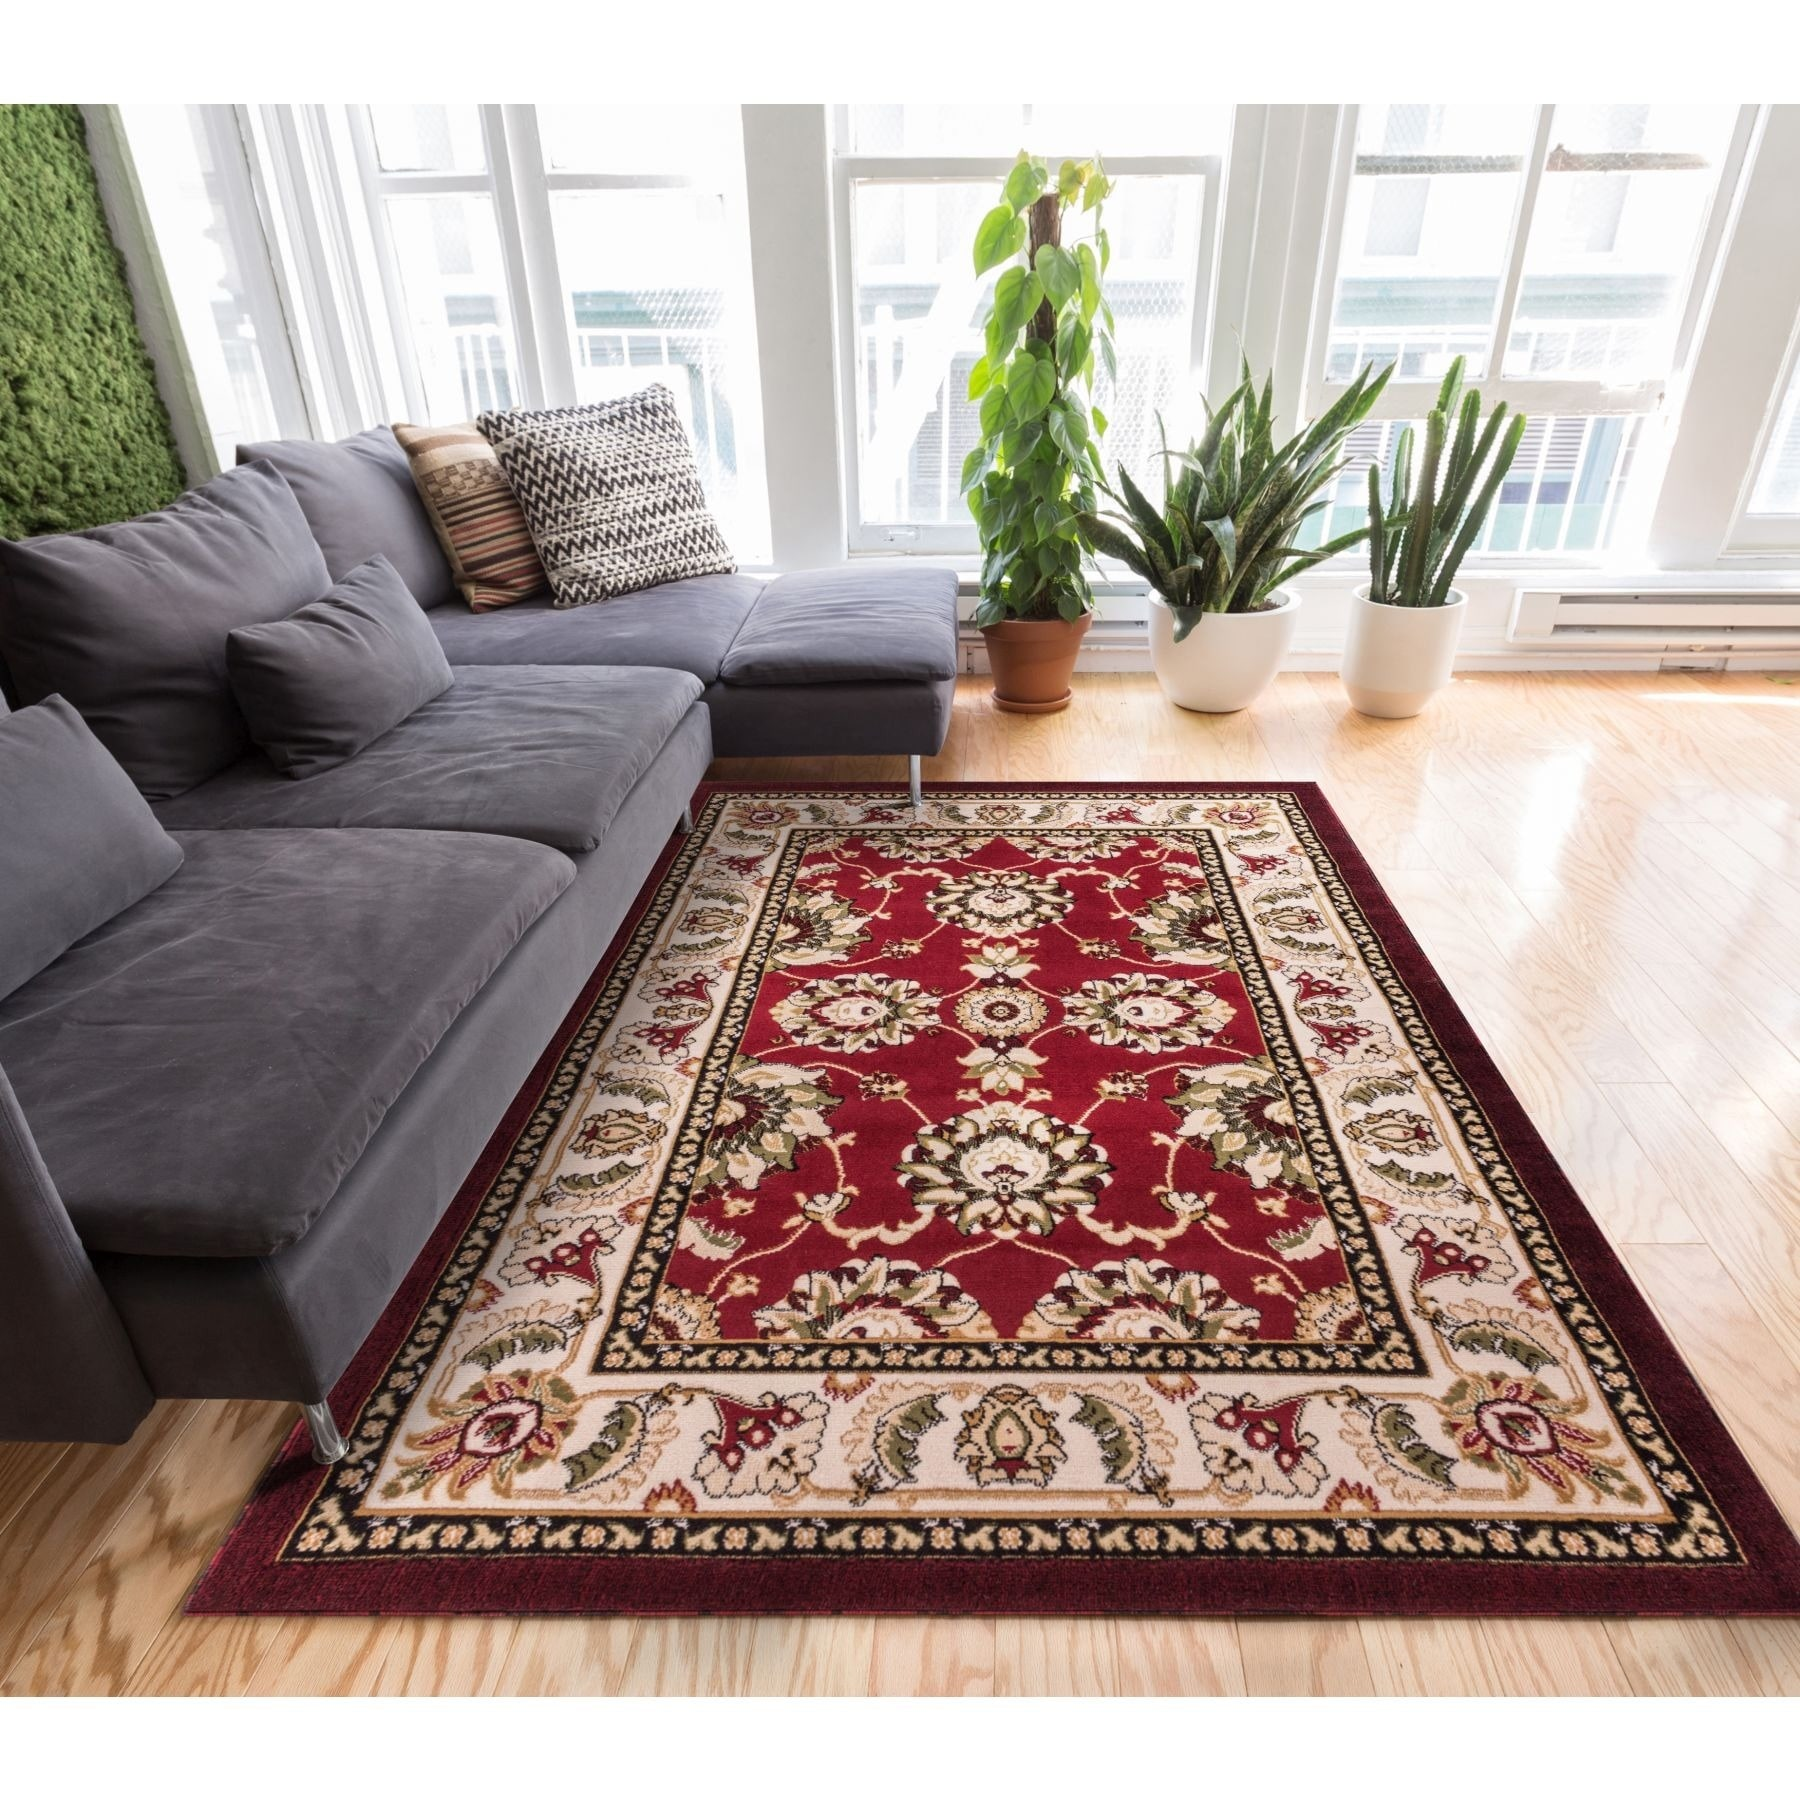 Well-woven Antep Traditional Red Wide Border Area Rug (7'...